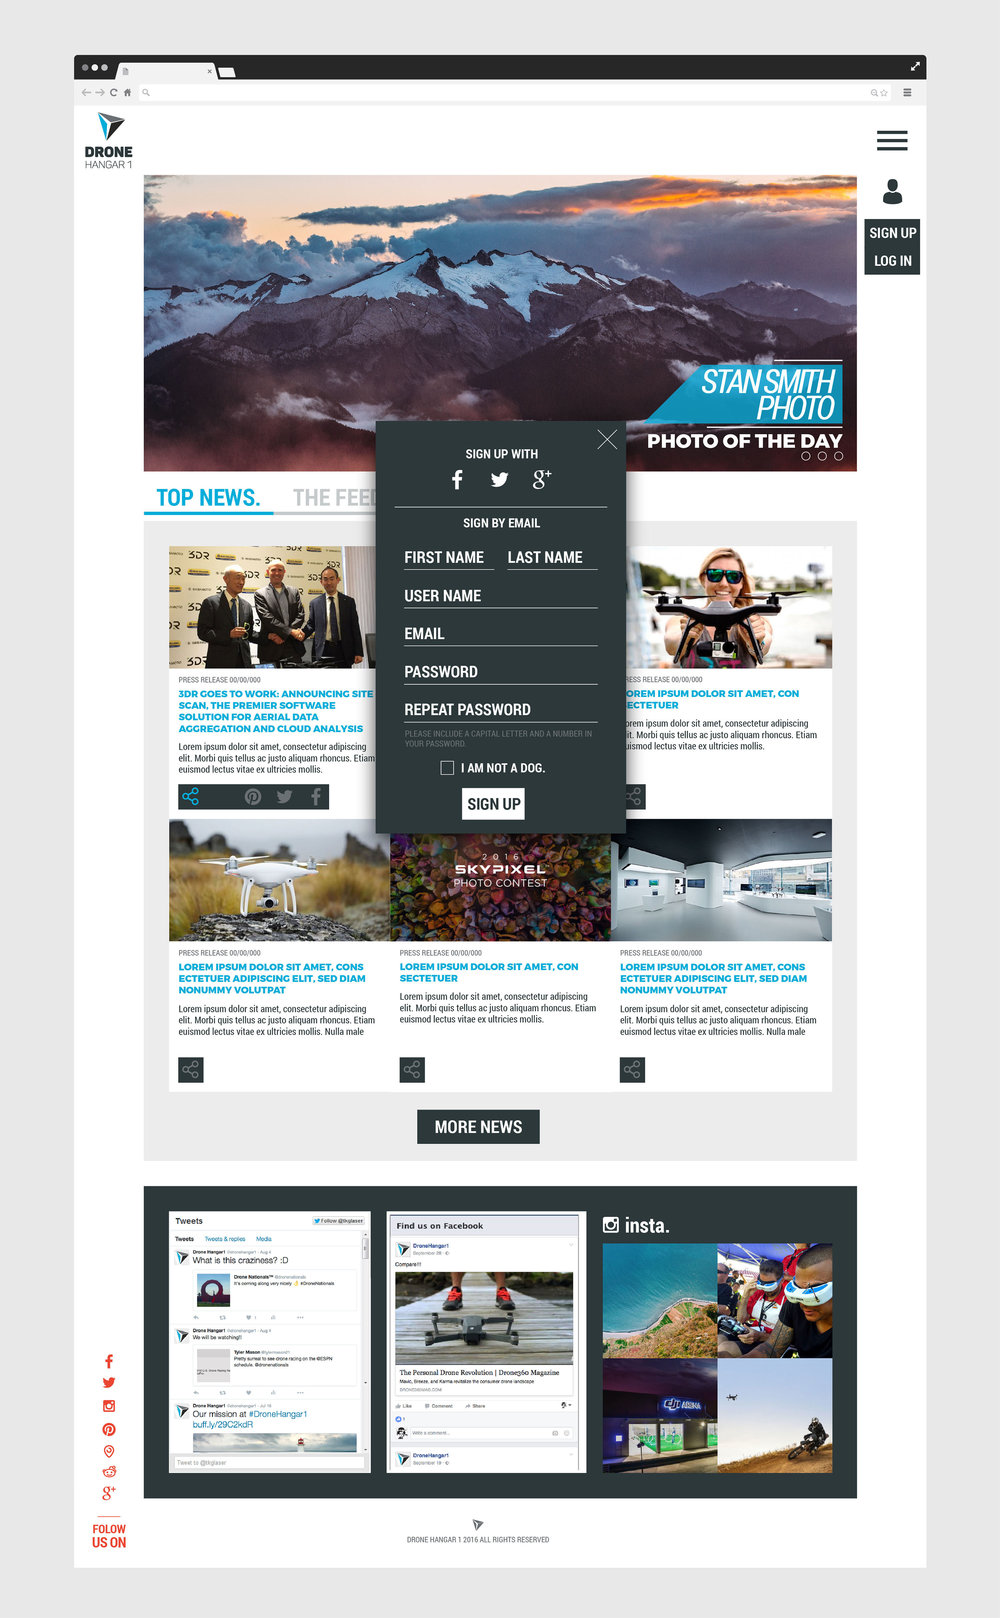 drone website design.jpg